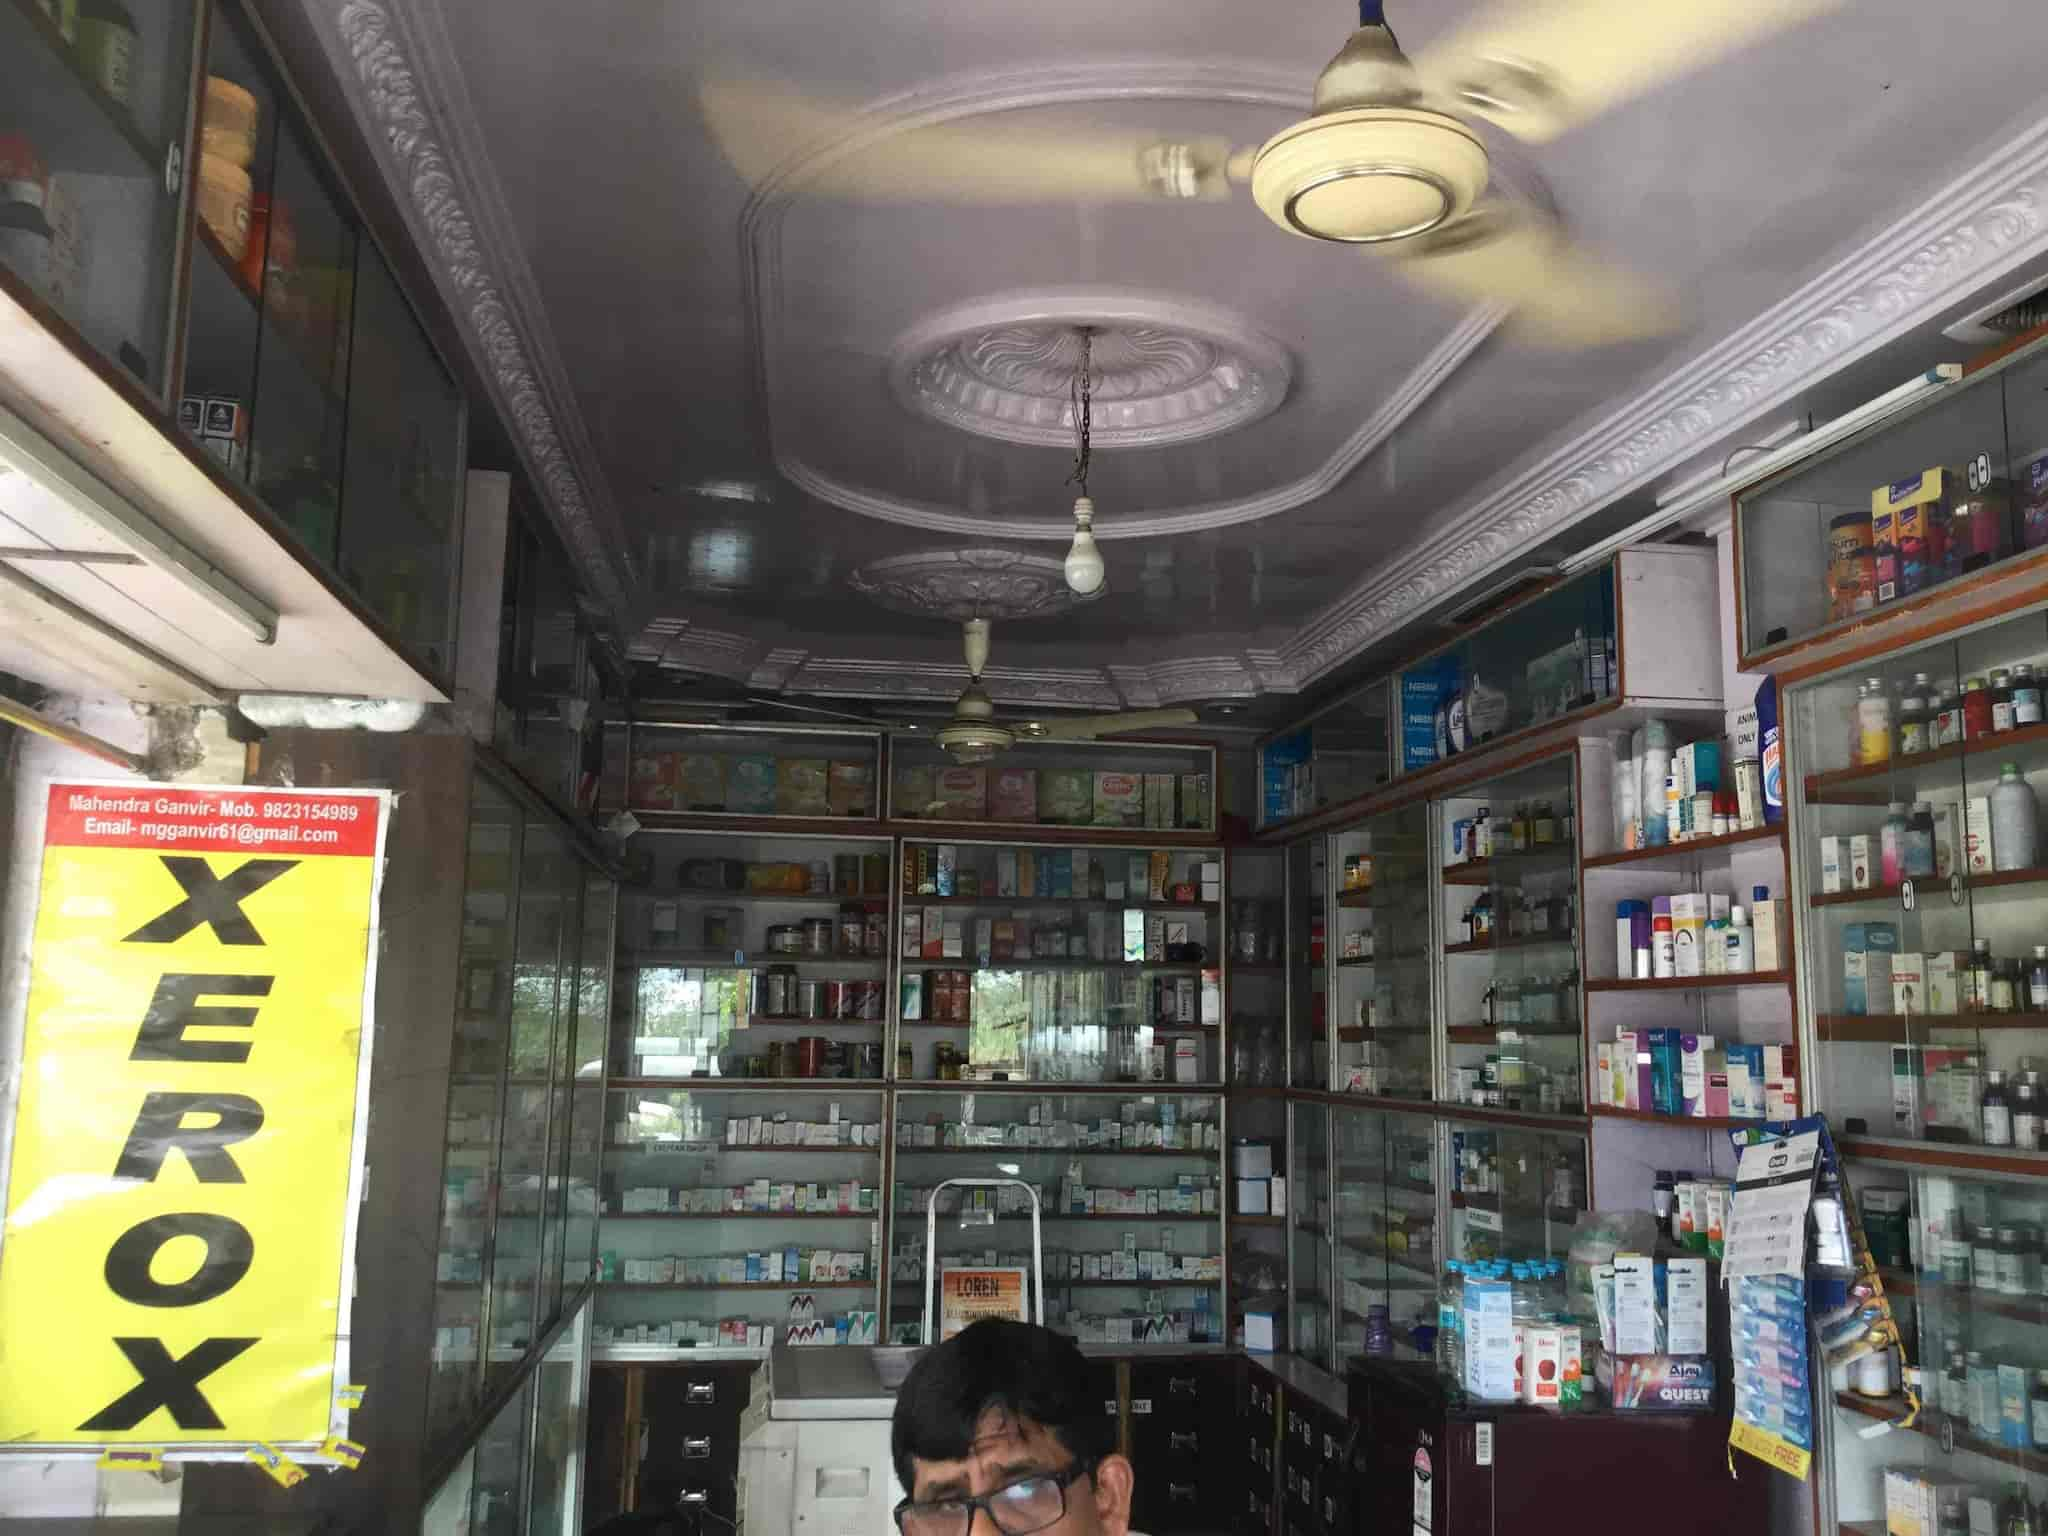 Shri Vitthal Medical, Wardha Road - Chemists in Nagpur - Justdial on